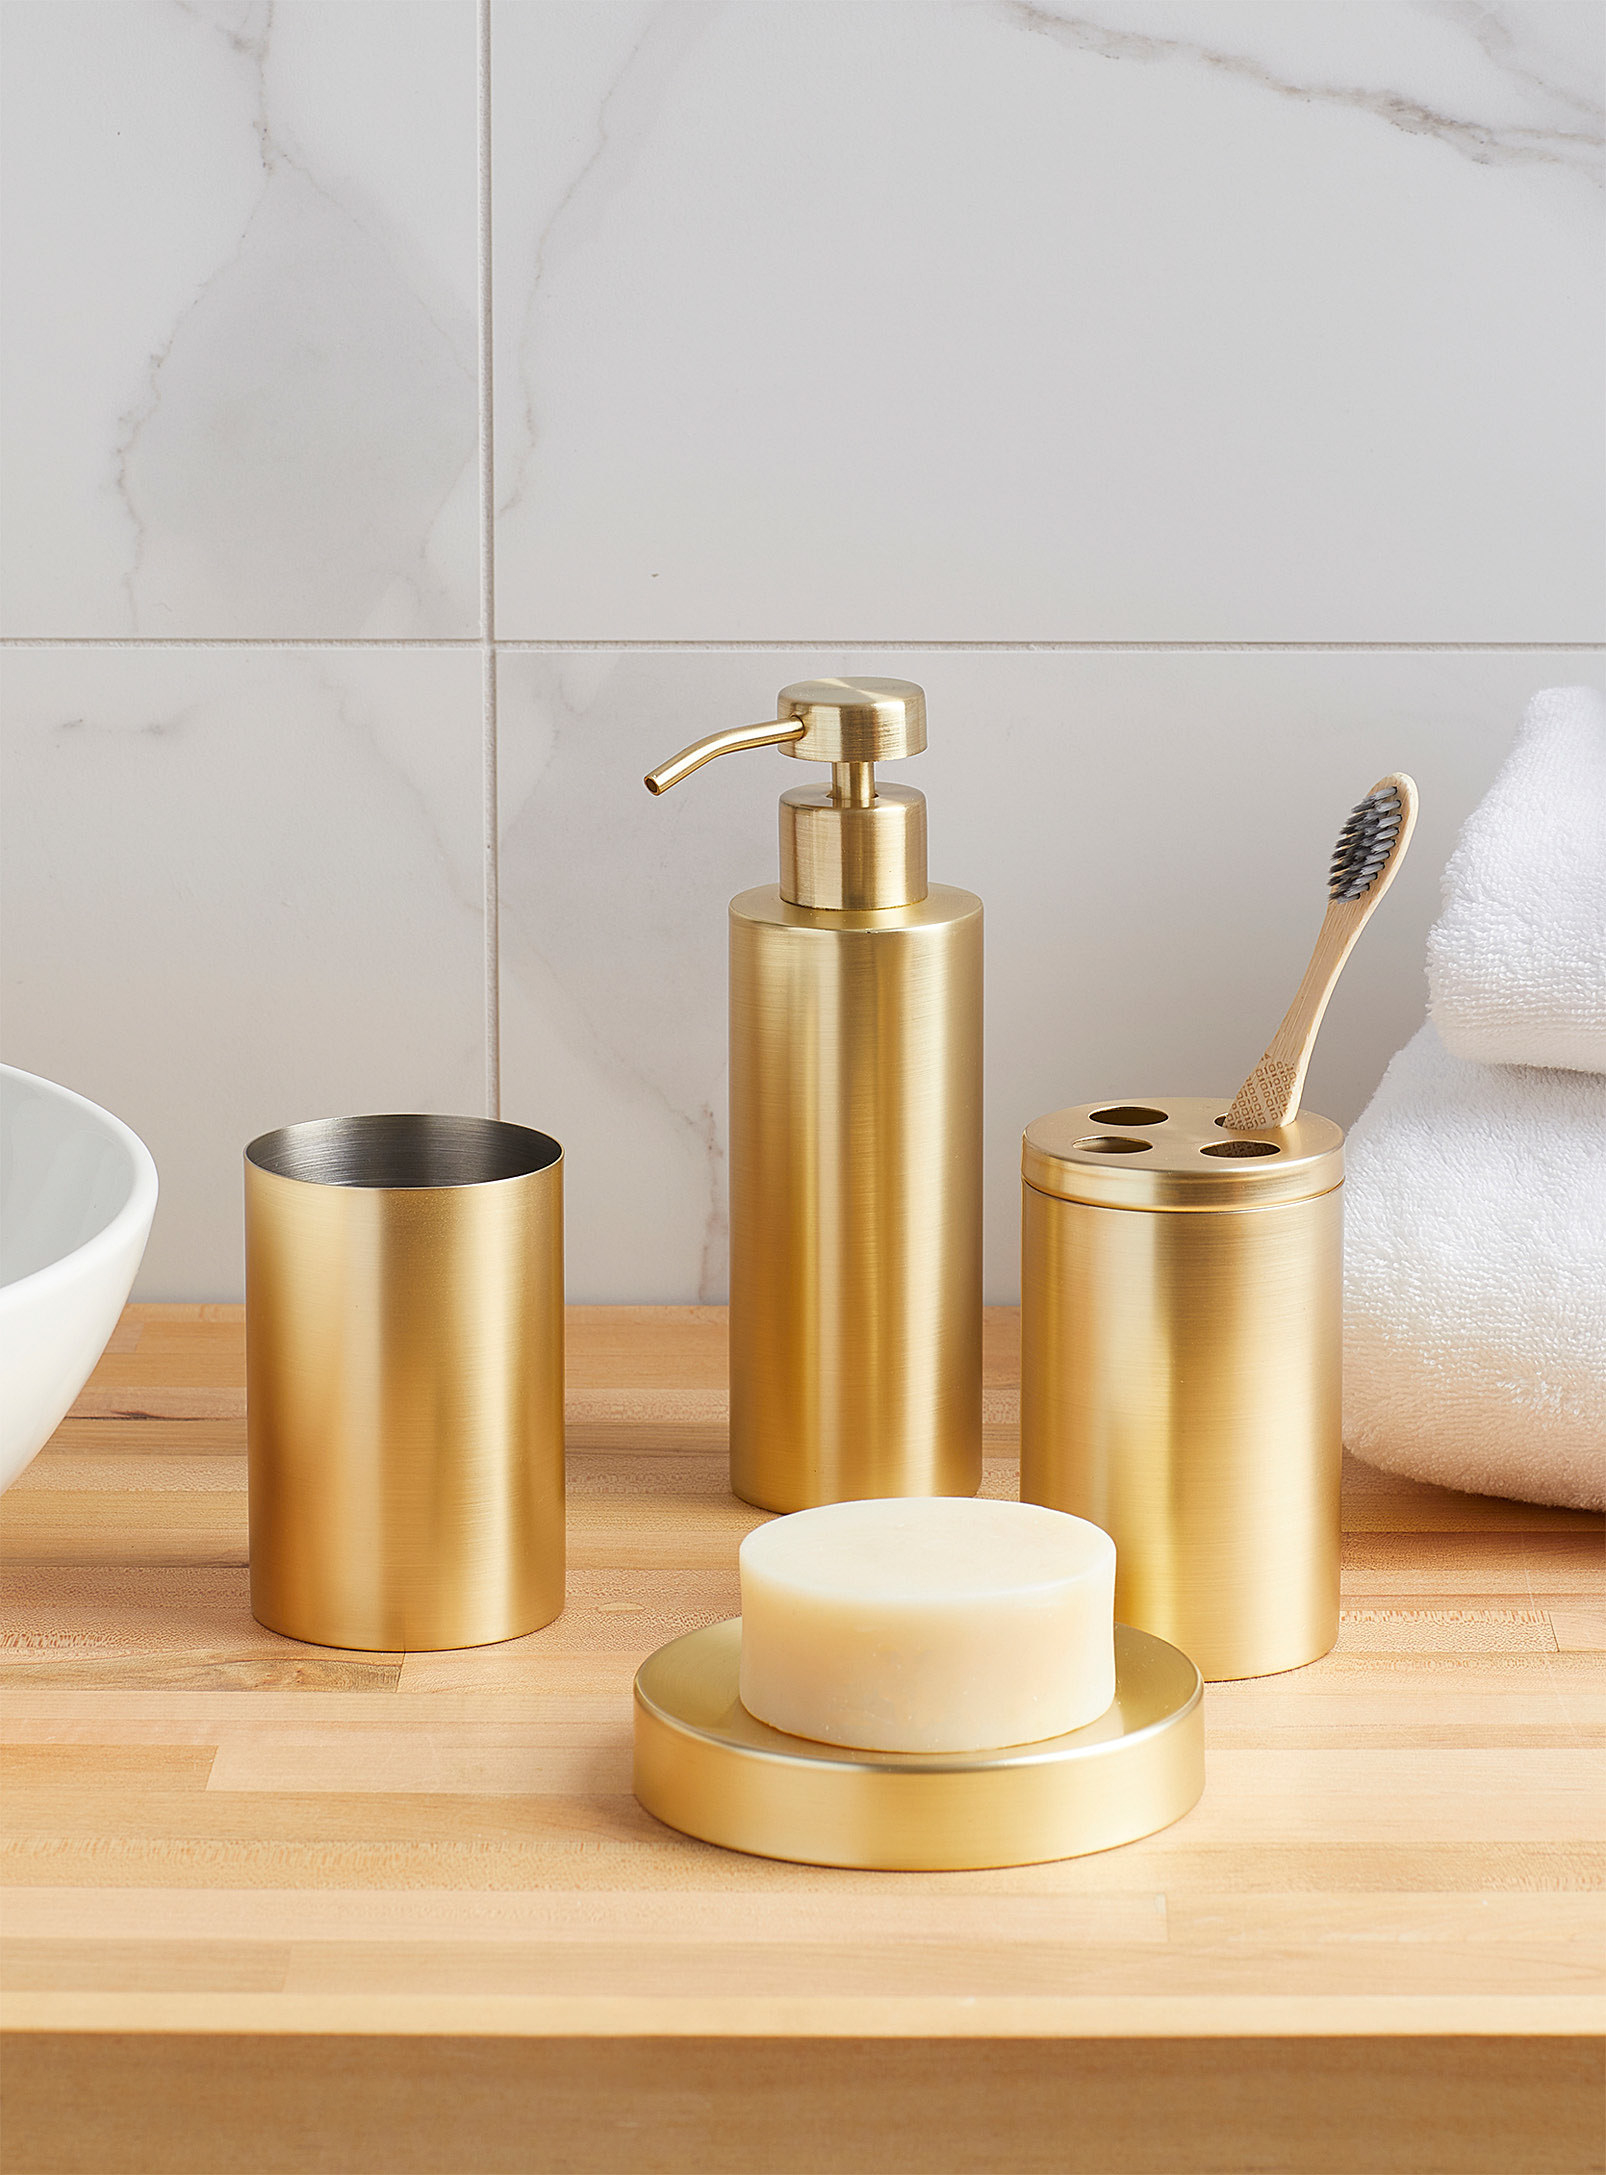 the set with a toothbrush holder, cup, soap holder, and soap pump